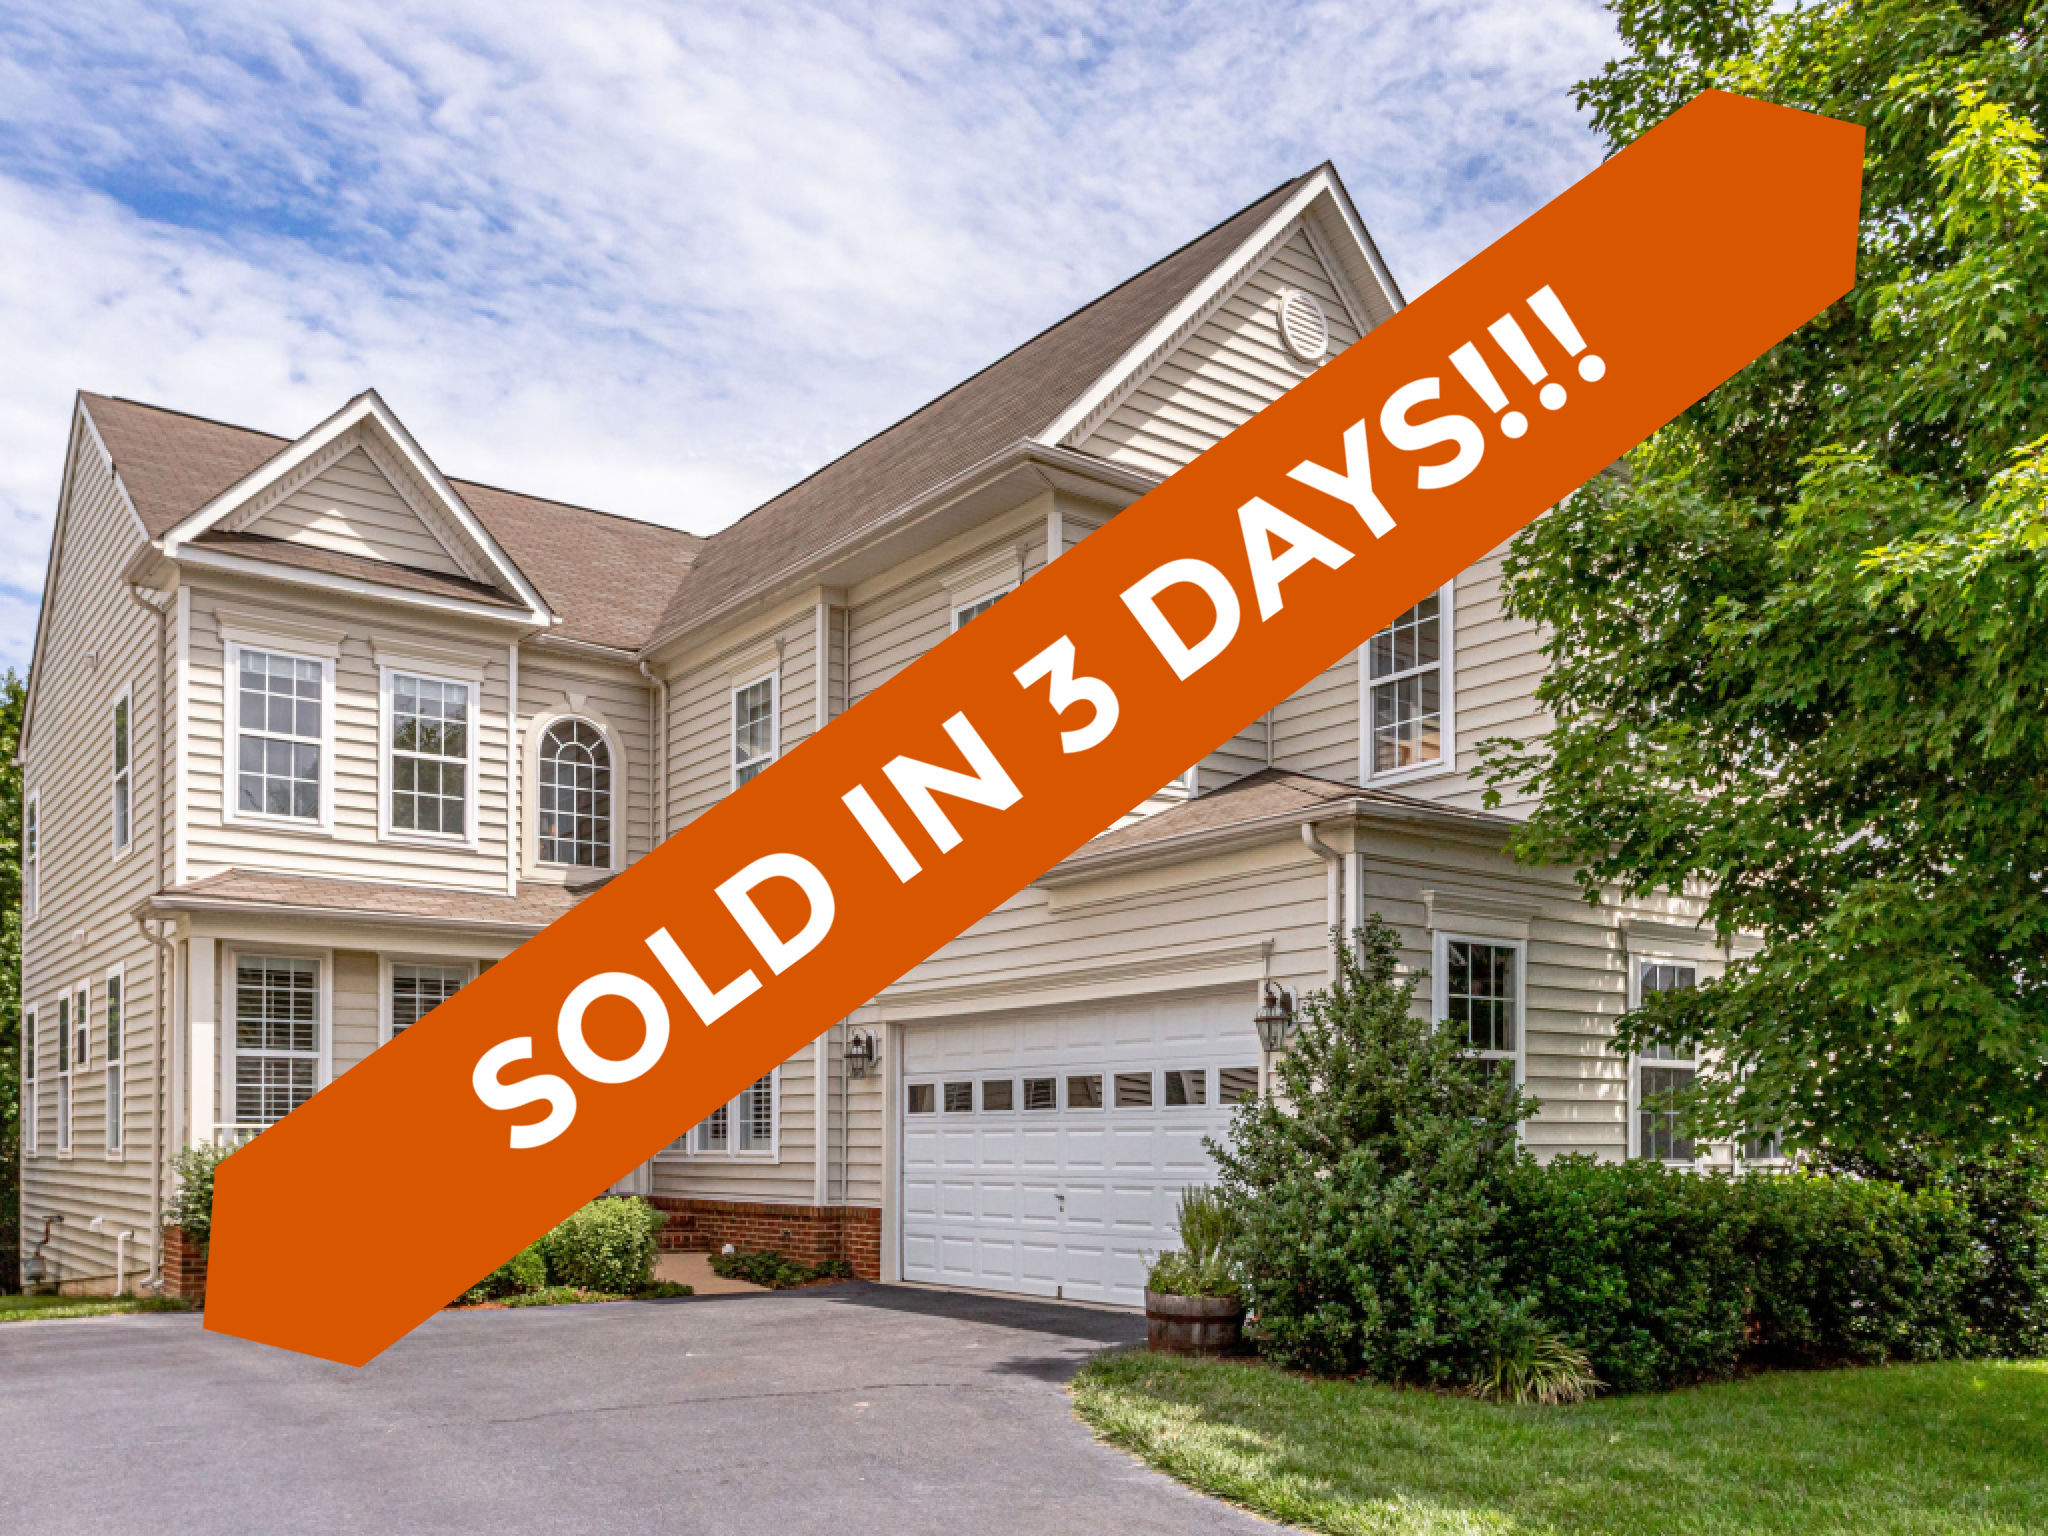 42914 Park Brooke Ct, Broadlands, VA 20148- SOLD